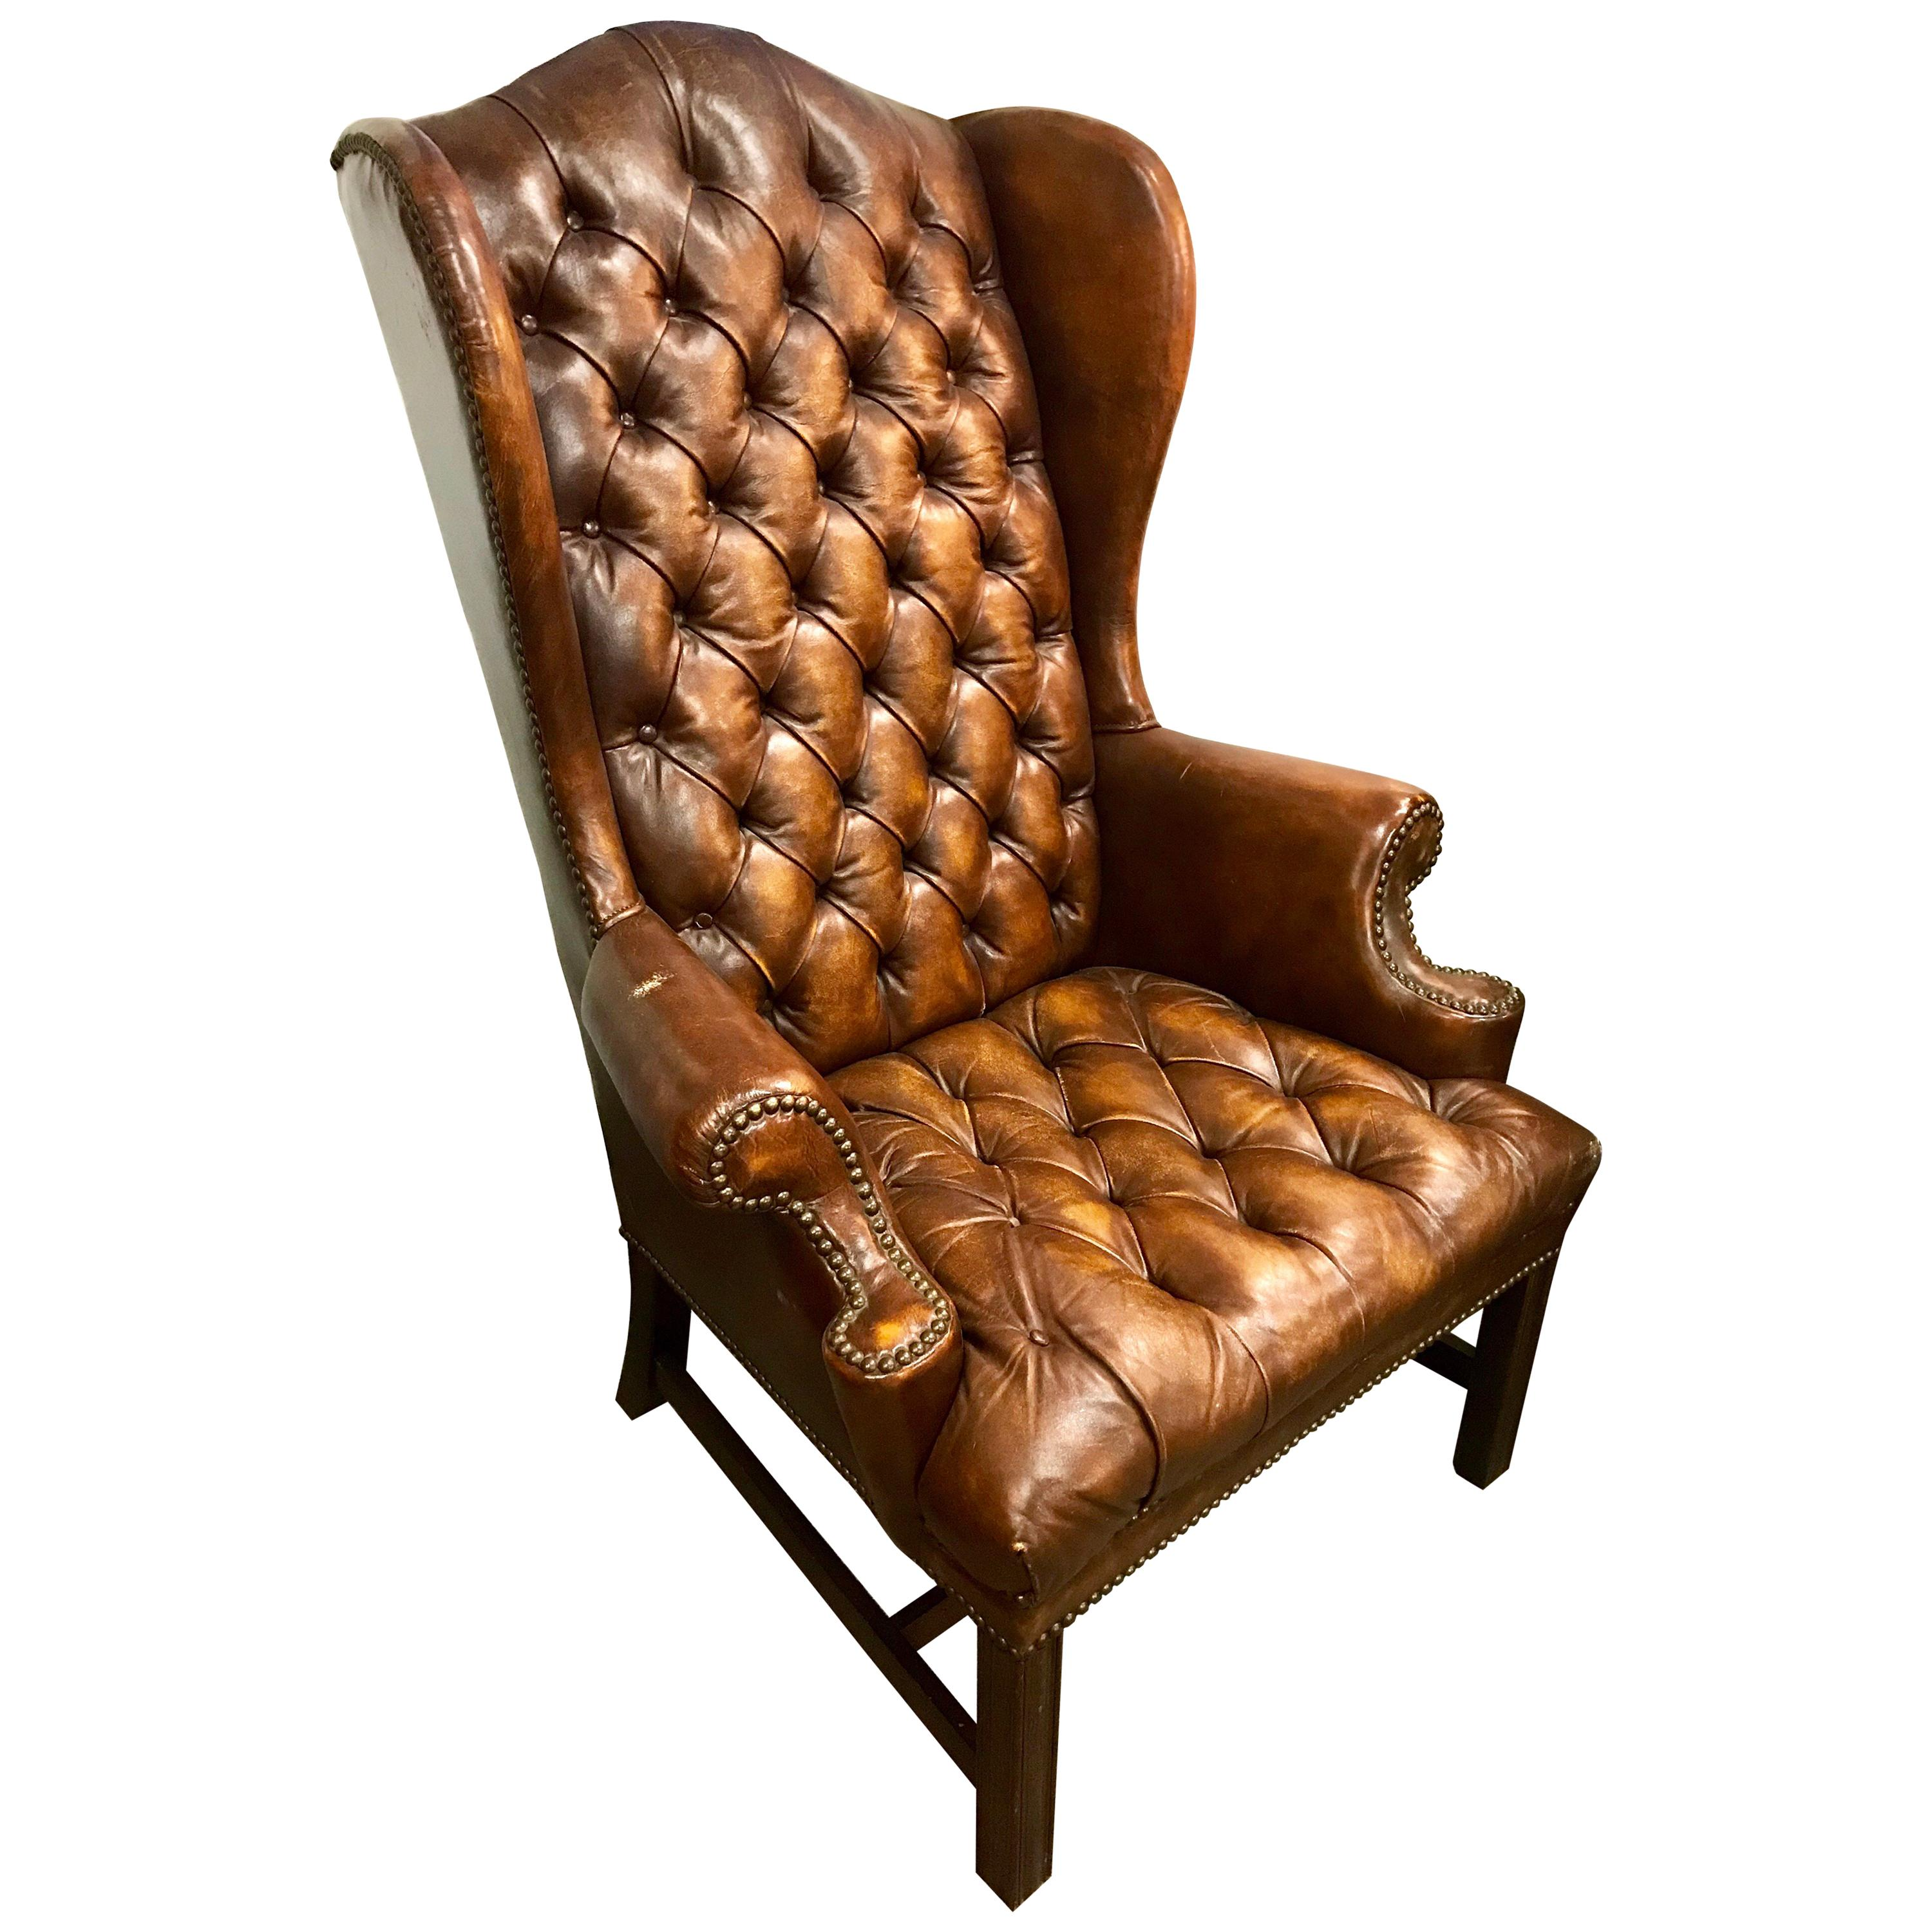 Wingback Tufted Chair English Brown Leather Tufted Chesterfield Wingback Chair